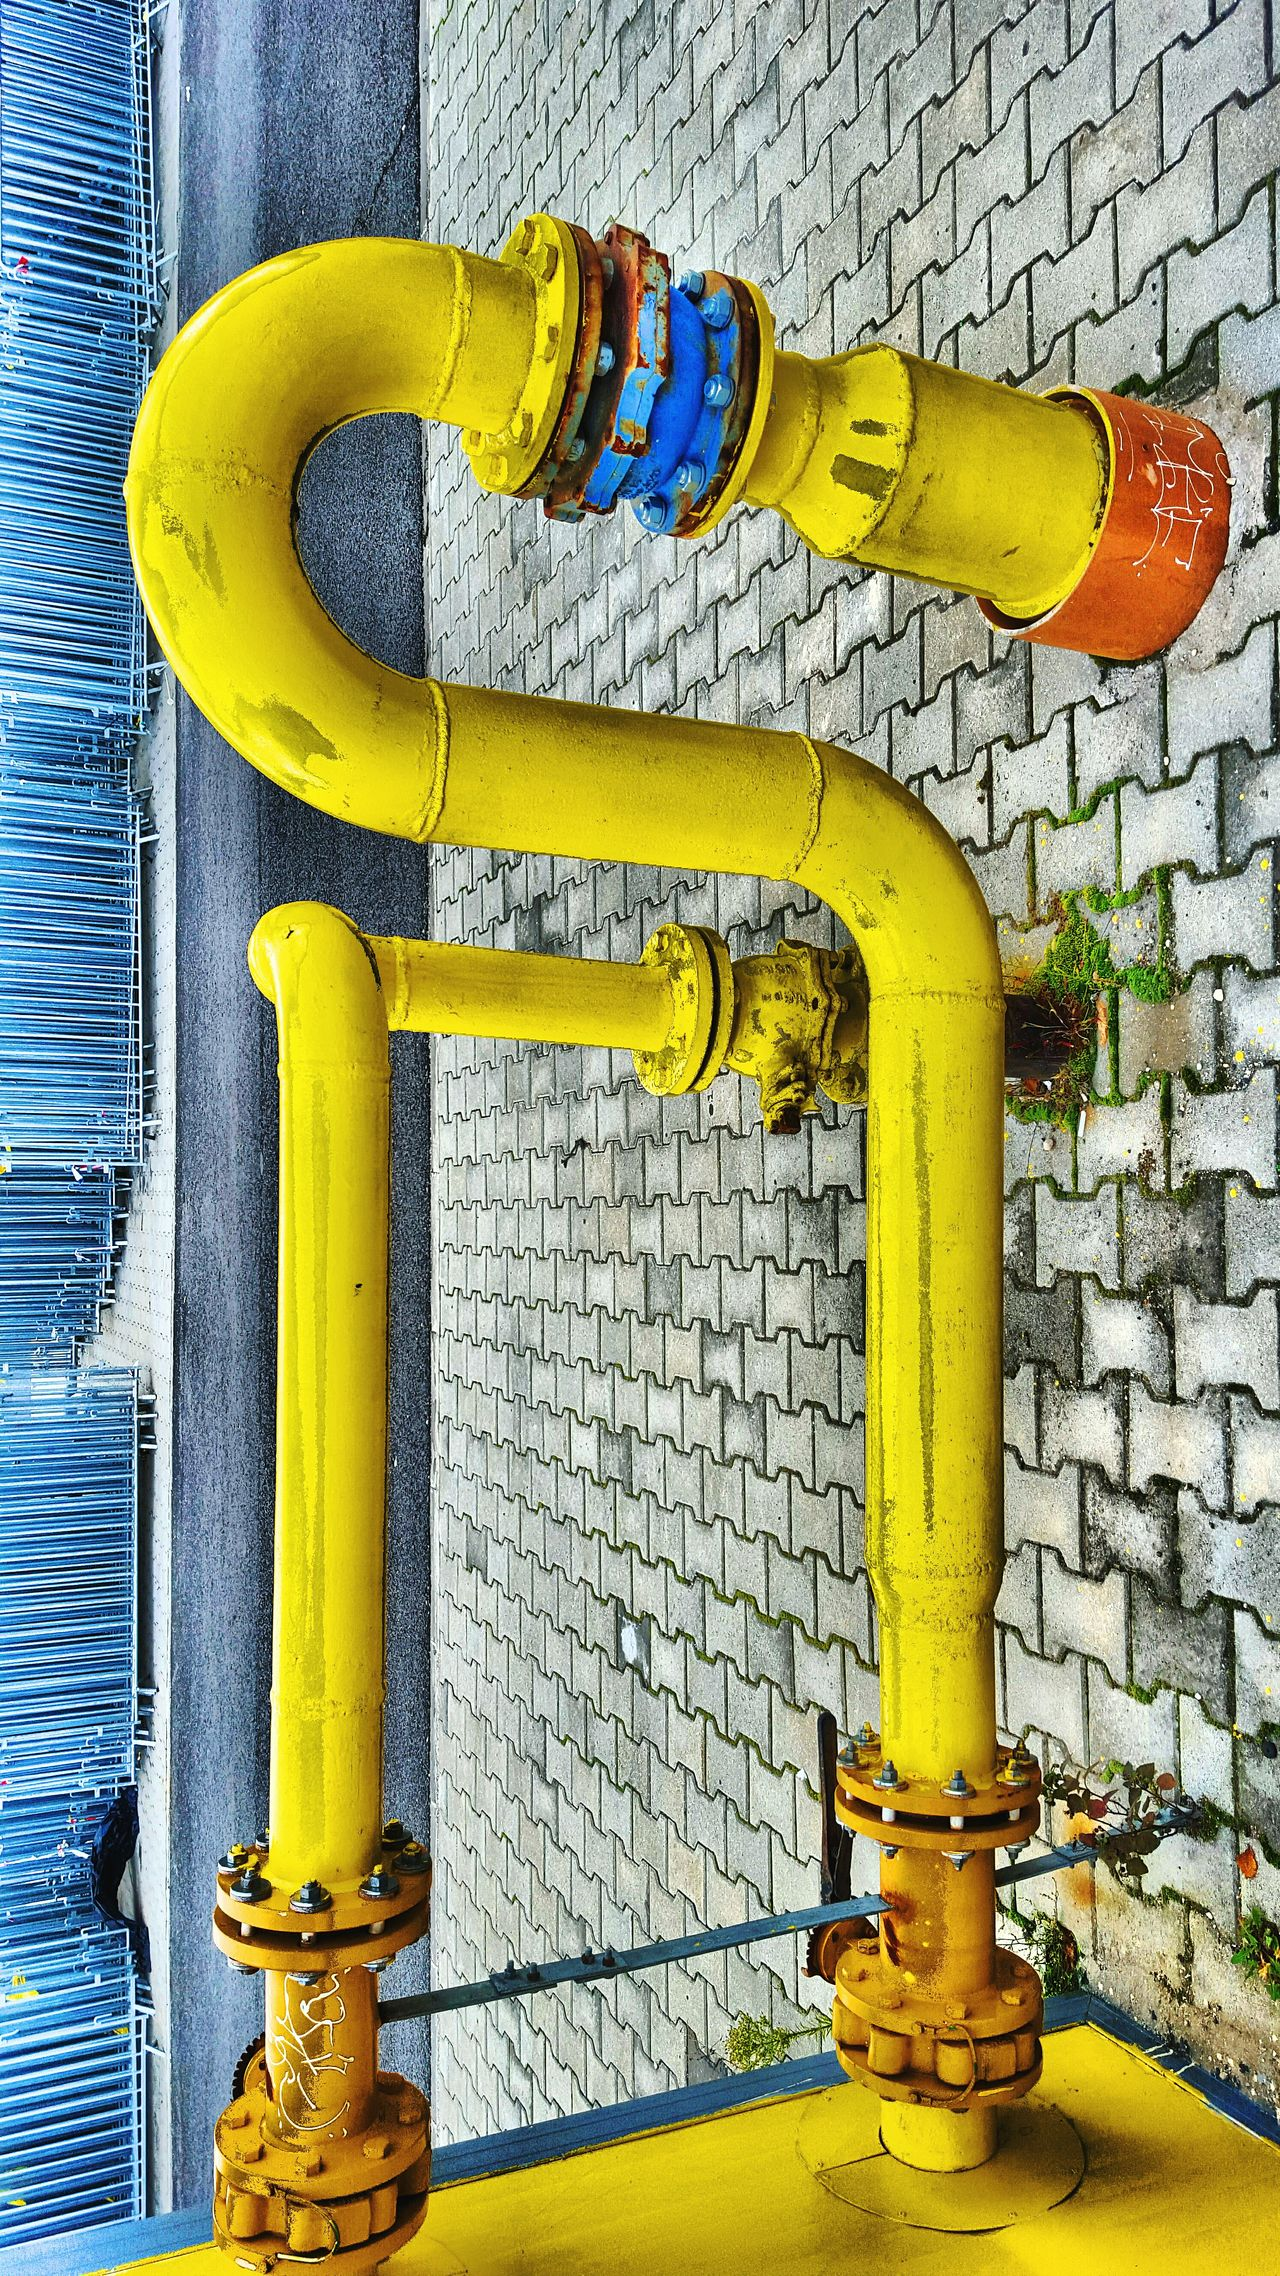 Yellow No People Close-up Outdoors Gas Day Pipes Pipe - Tube